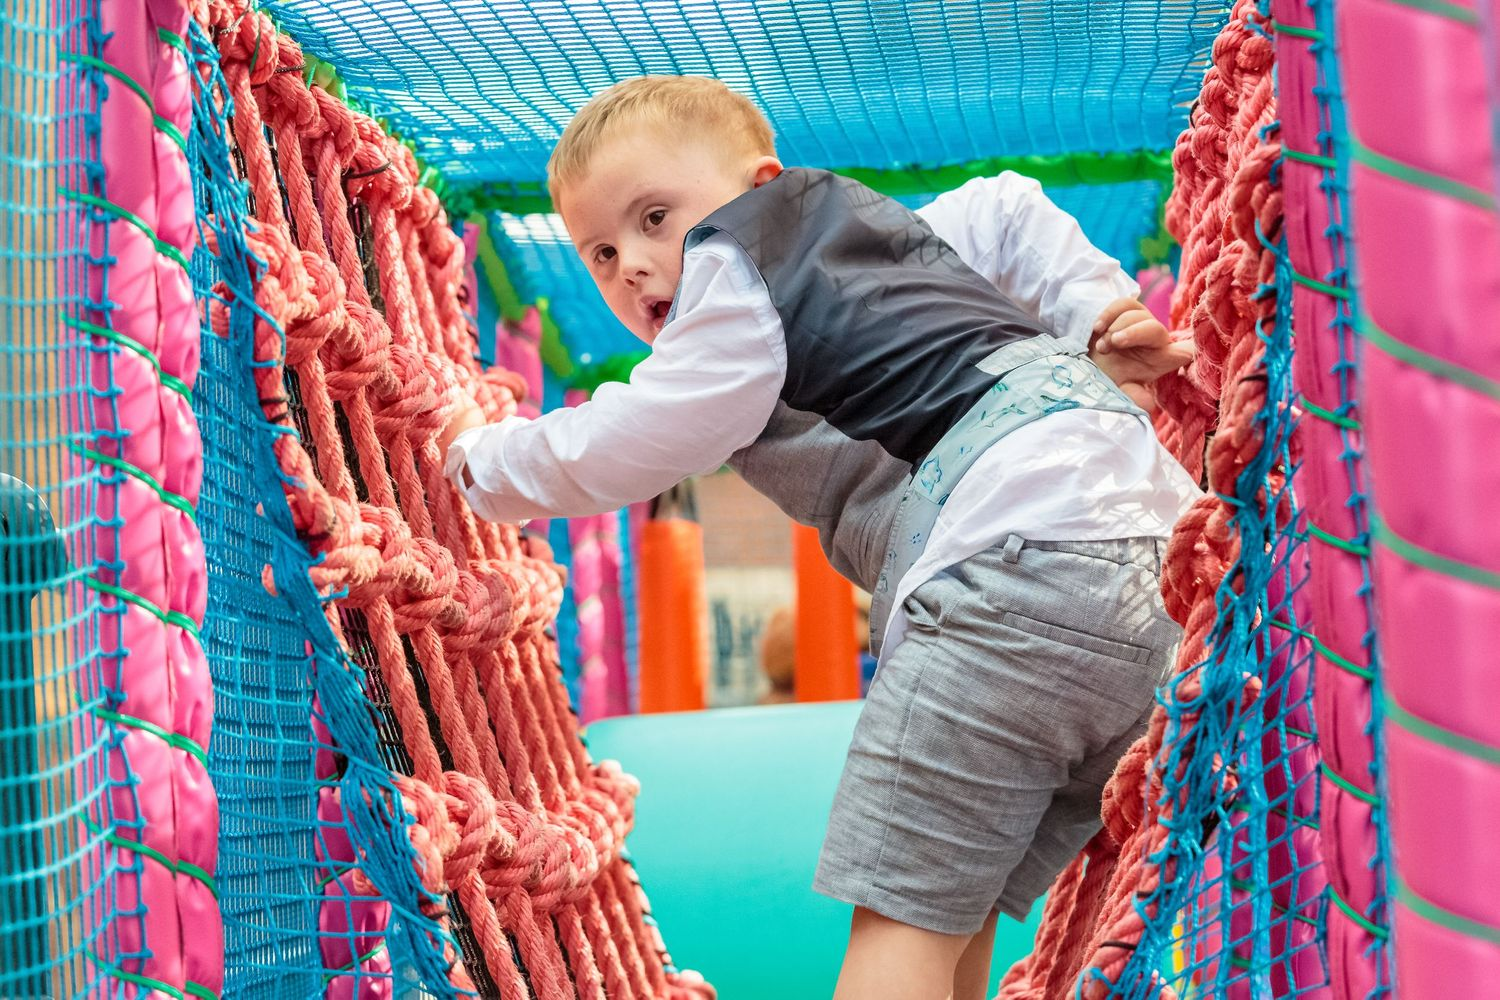 young boy on a climbing net looks back at the camera